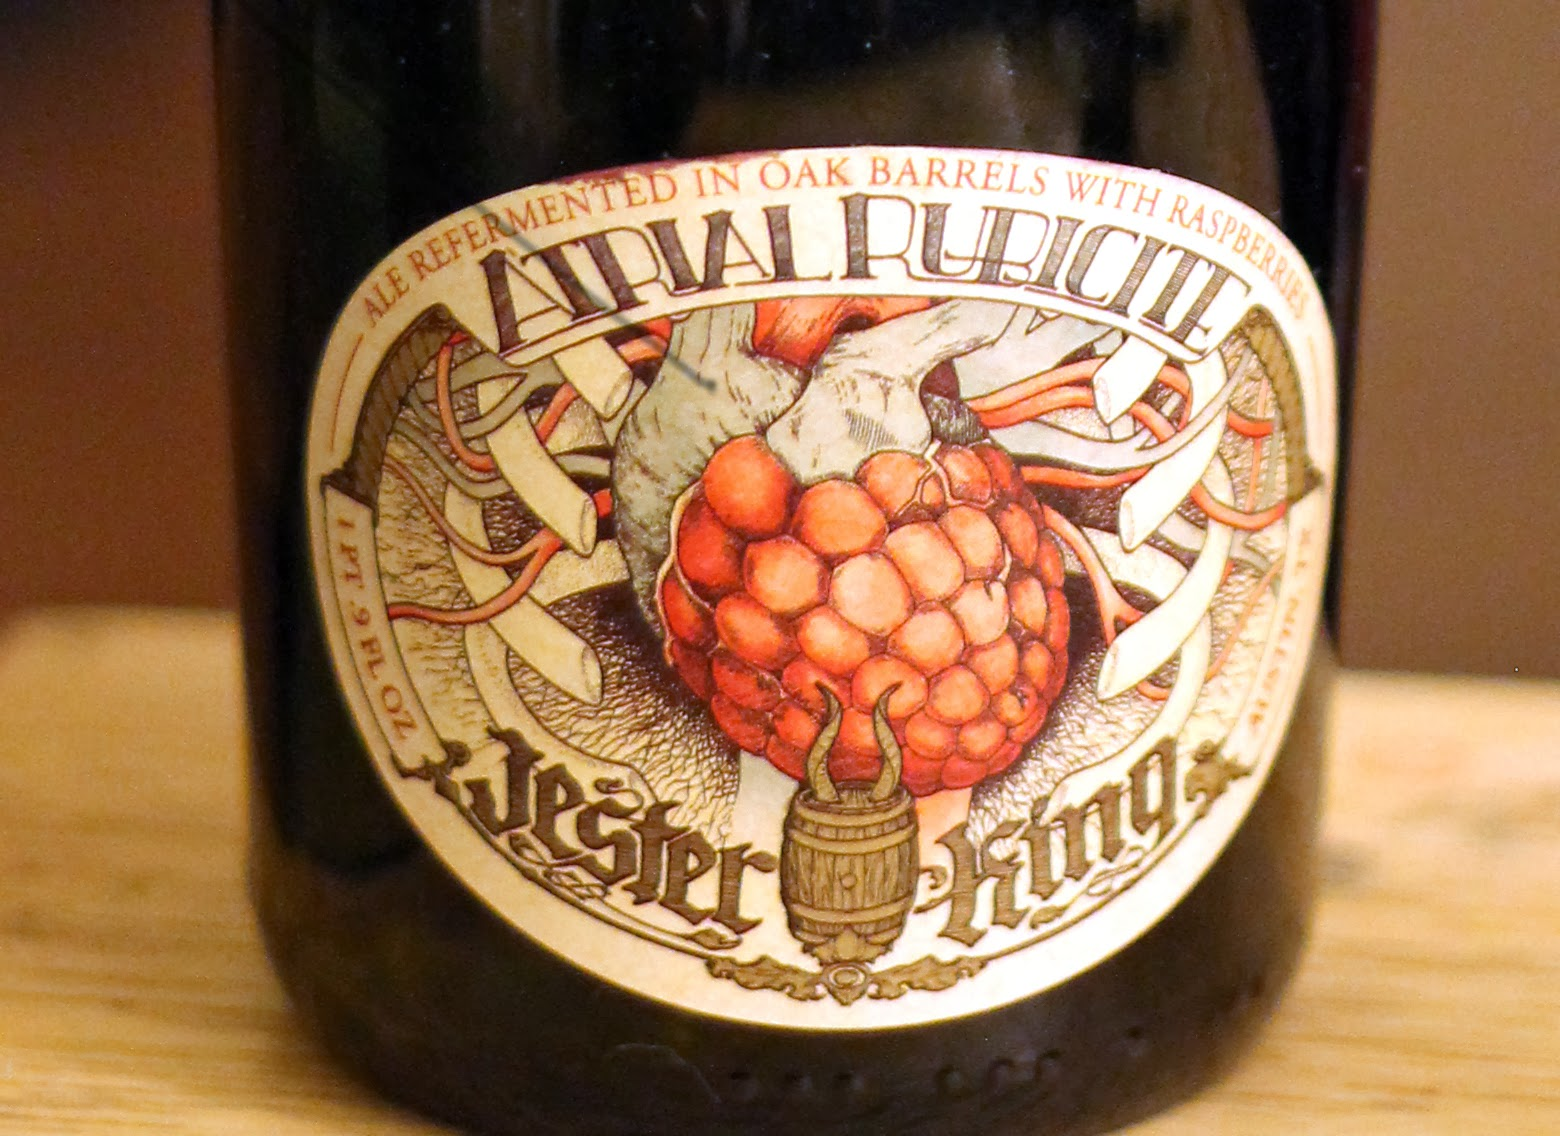 One of the most beautiful labels on any bottle of craft beer, Jester King's Atrial Rubicite!